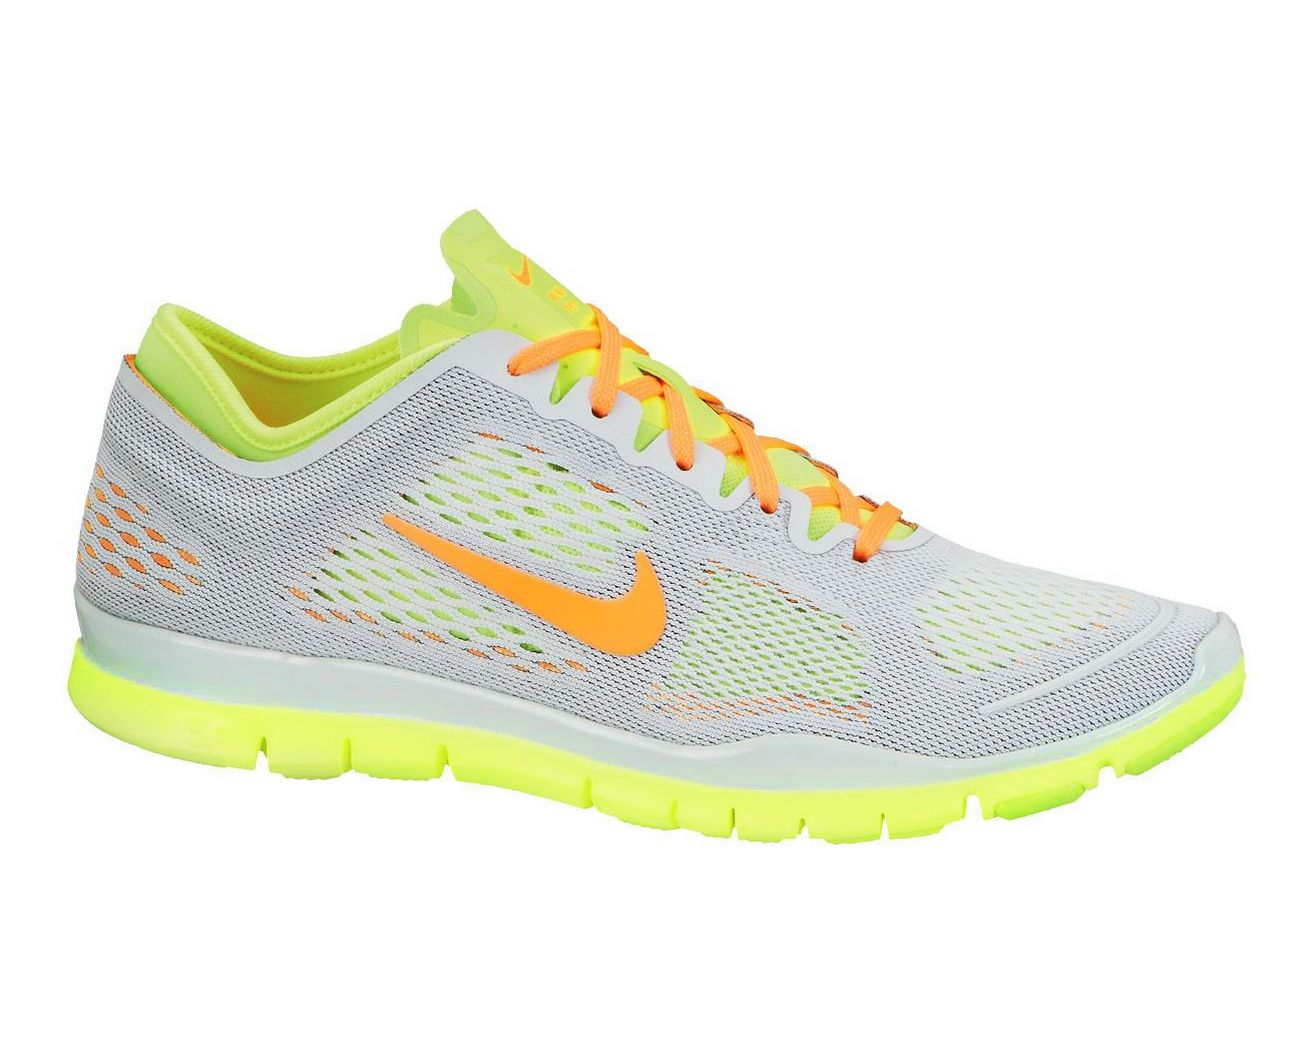 Womens Nike Free 5.0 TR Fit 4 Cross Training Shoe at Road Runner Sports